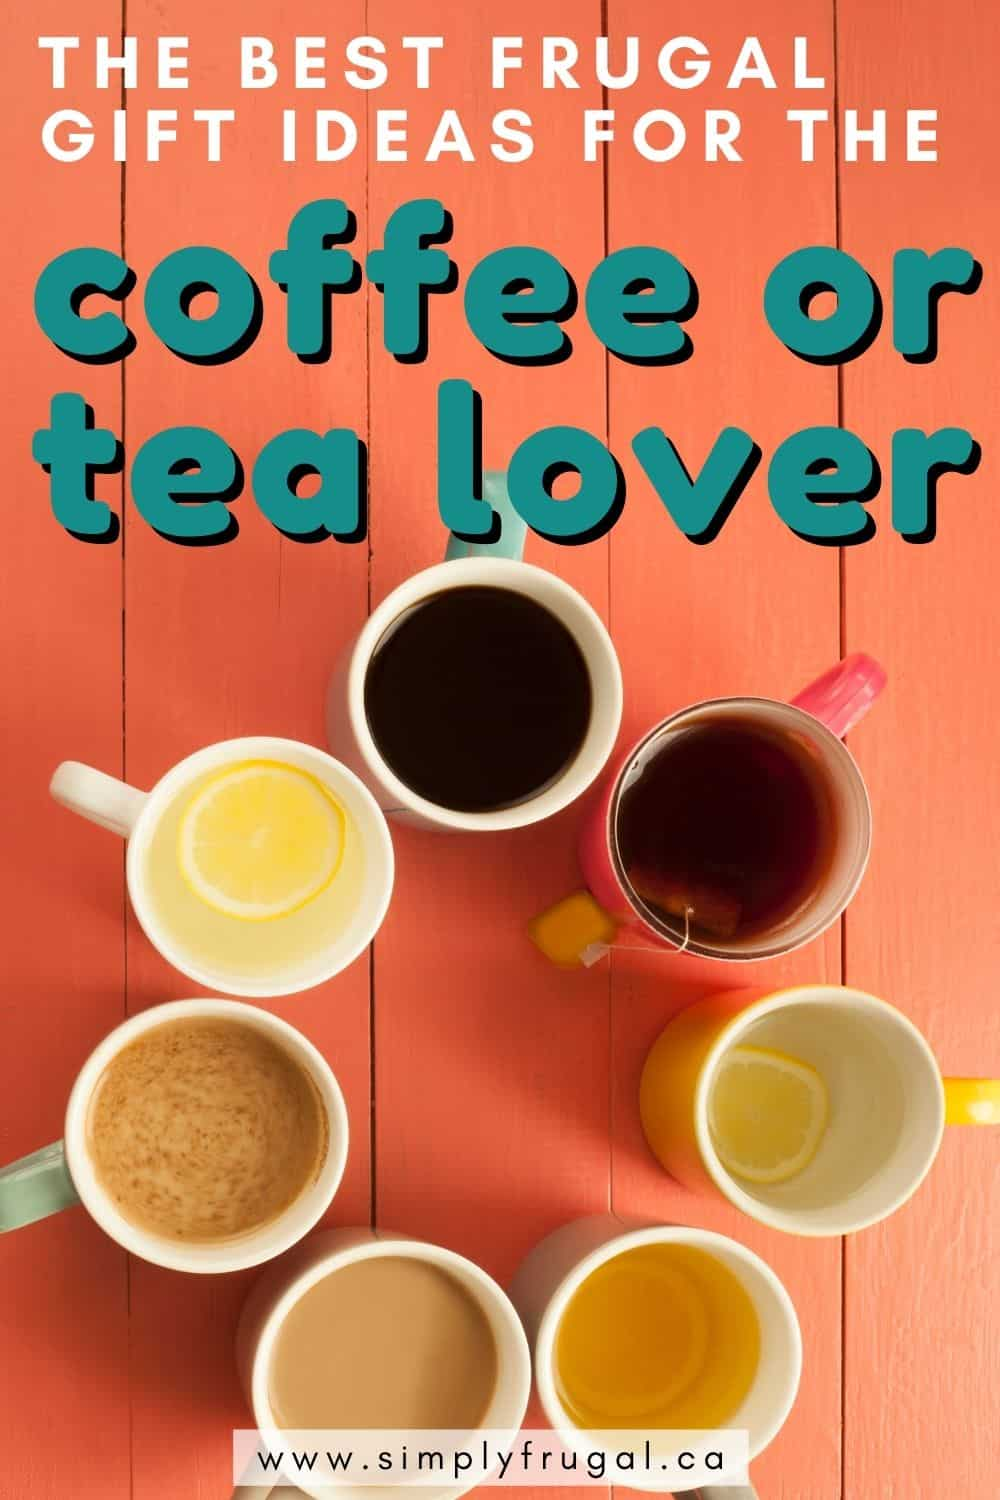 If you have a coffee or tea lover in your life, let me help you find the perfect gift for them! Check out the following list of frugal gift ideas for coffee or tea lovers. The perfect gift may just be a couple quick scrolls away.